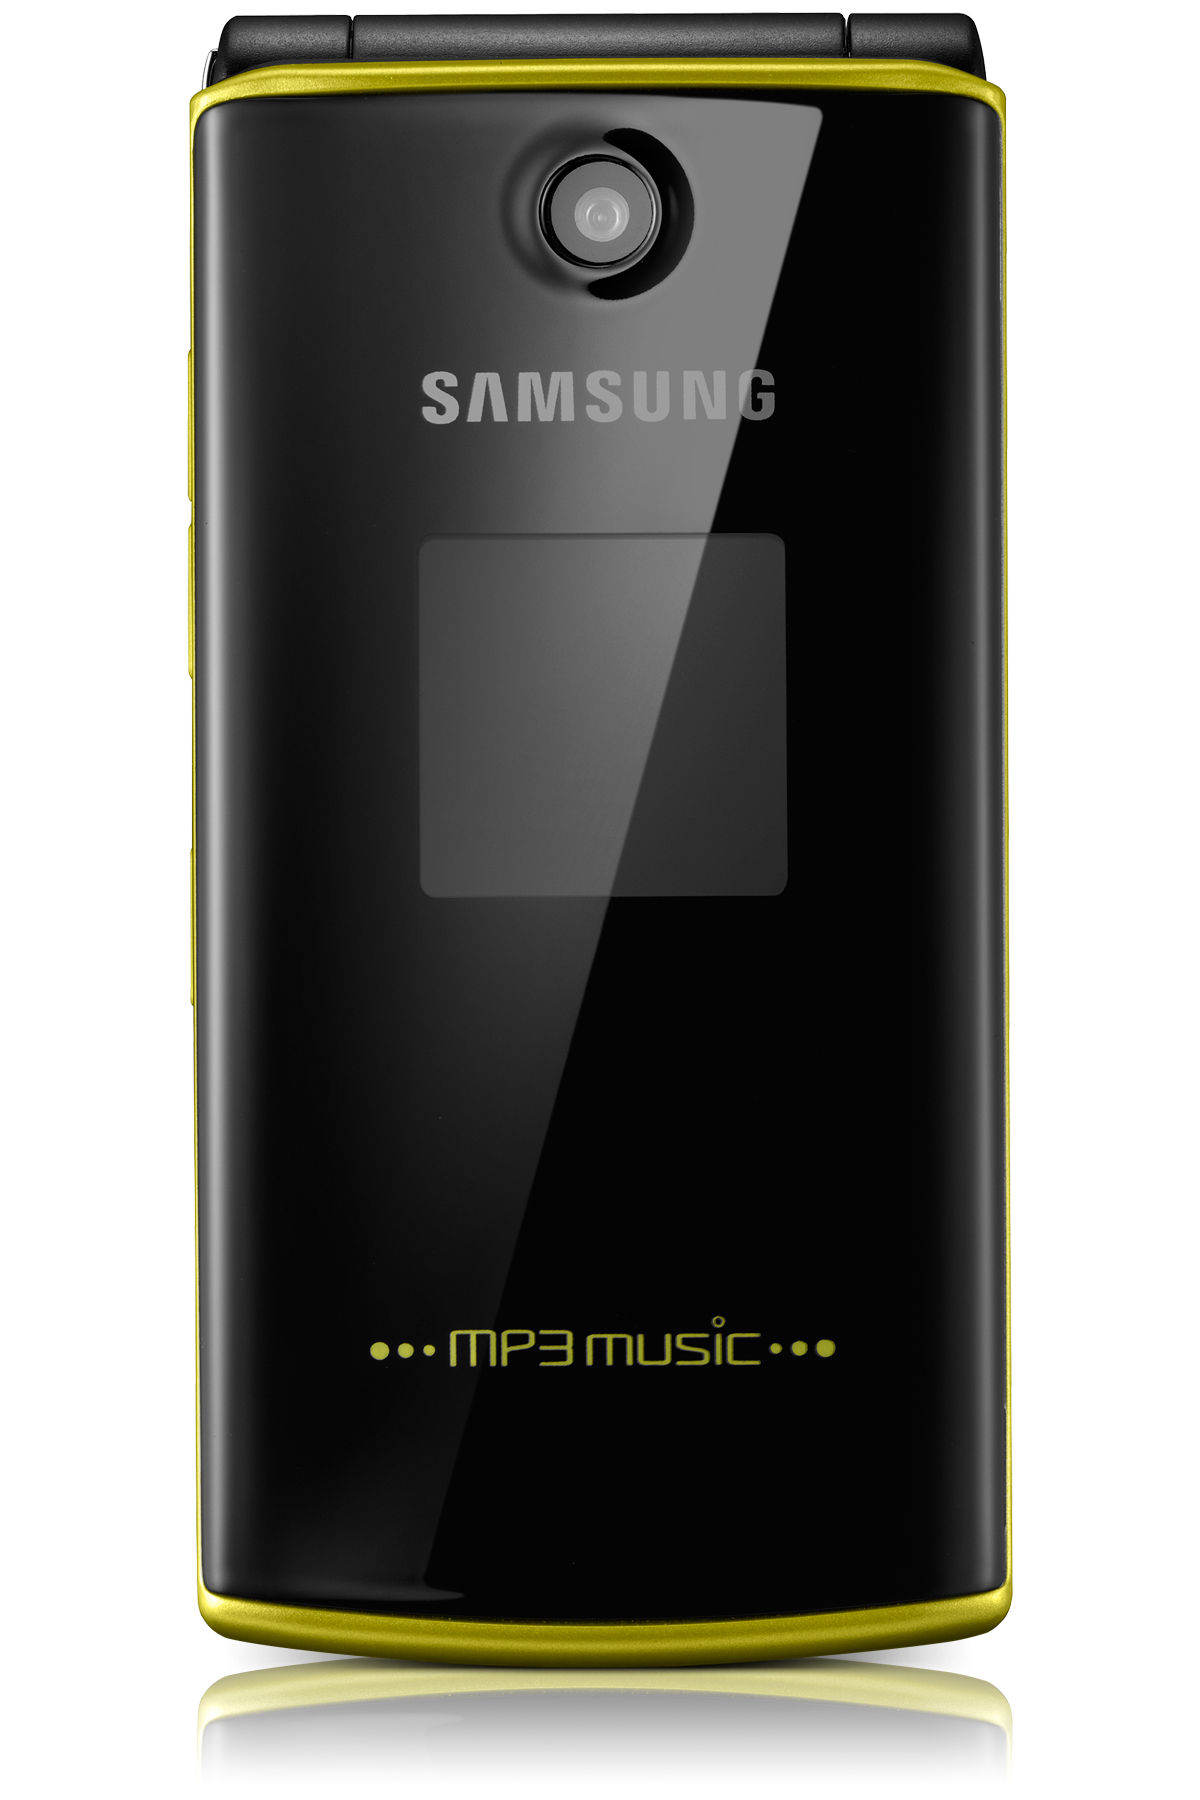 software samsung e215